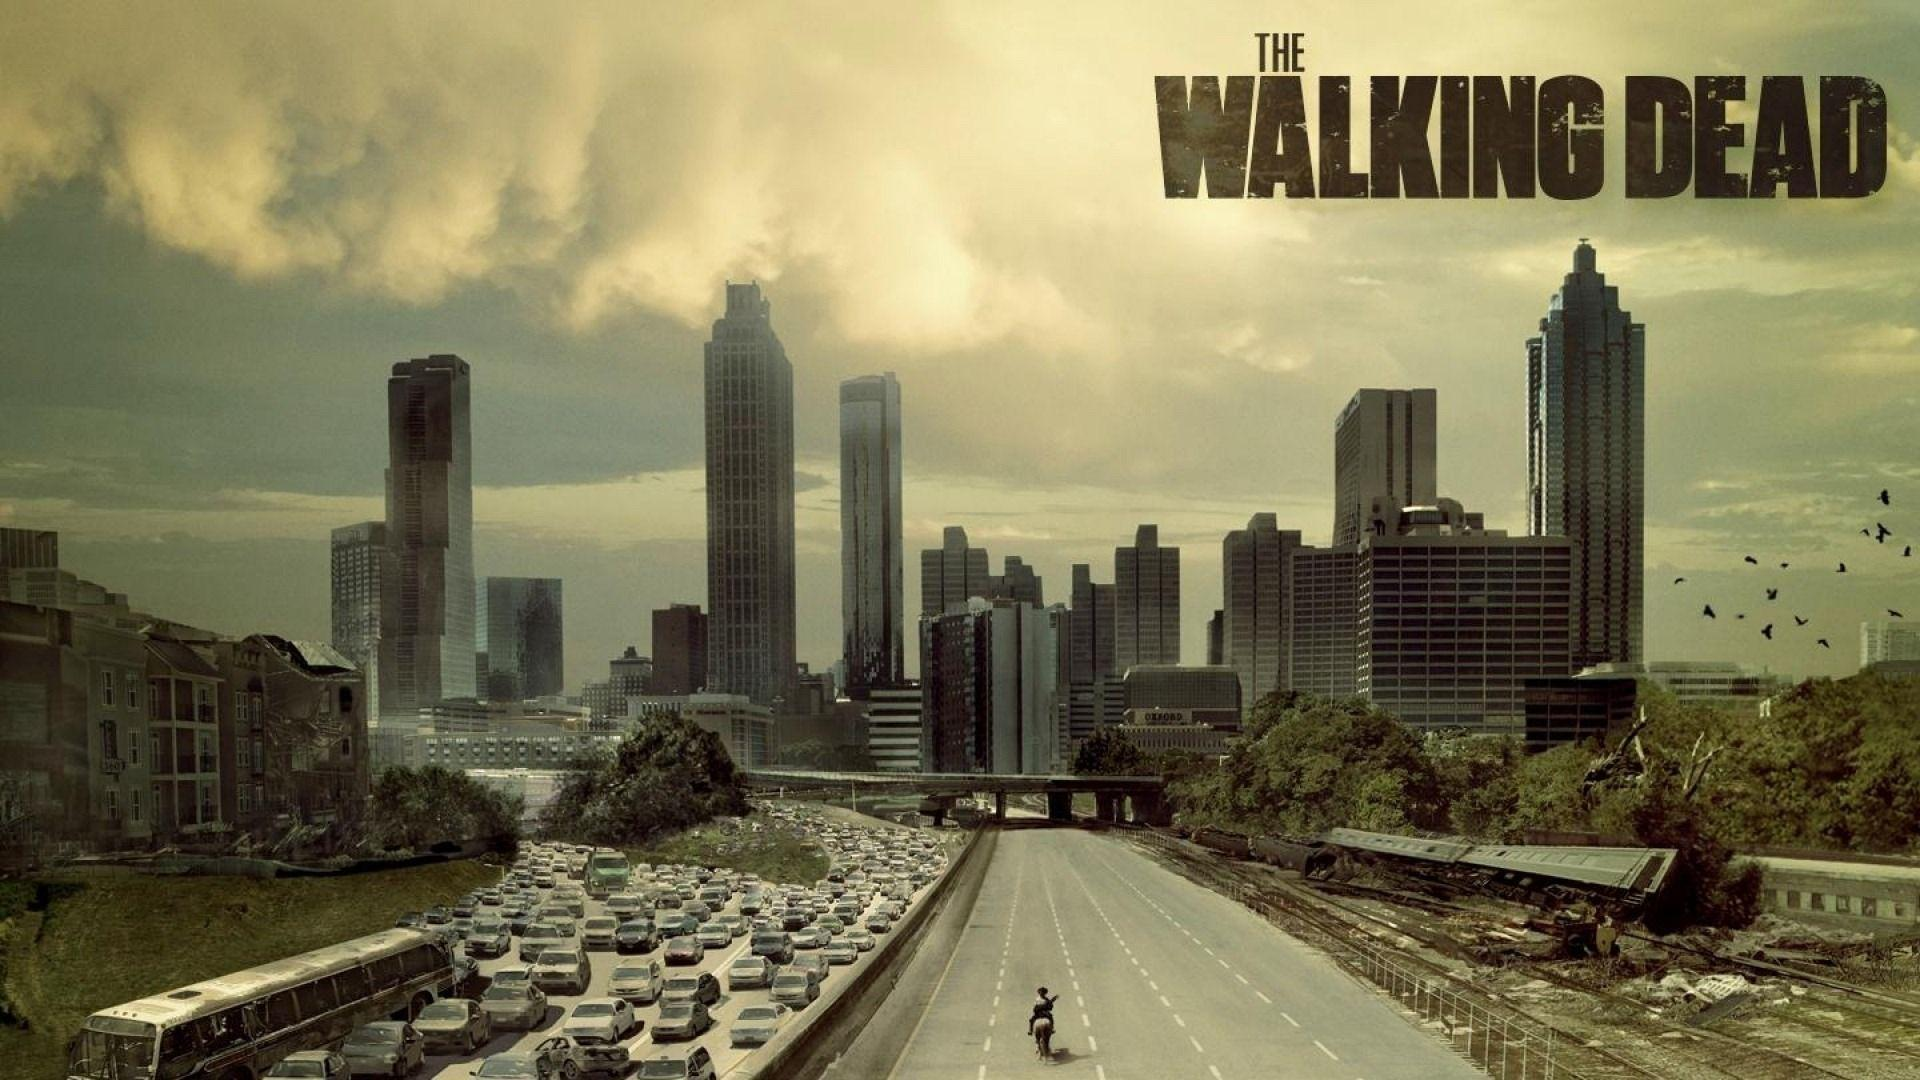 The Walking Dead City Hd Wallpaper | Wallpaper List